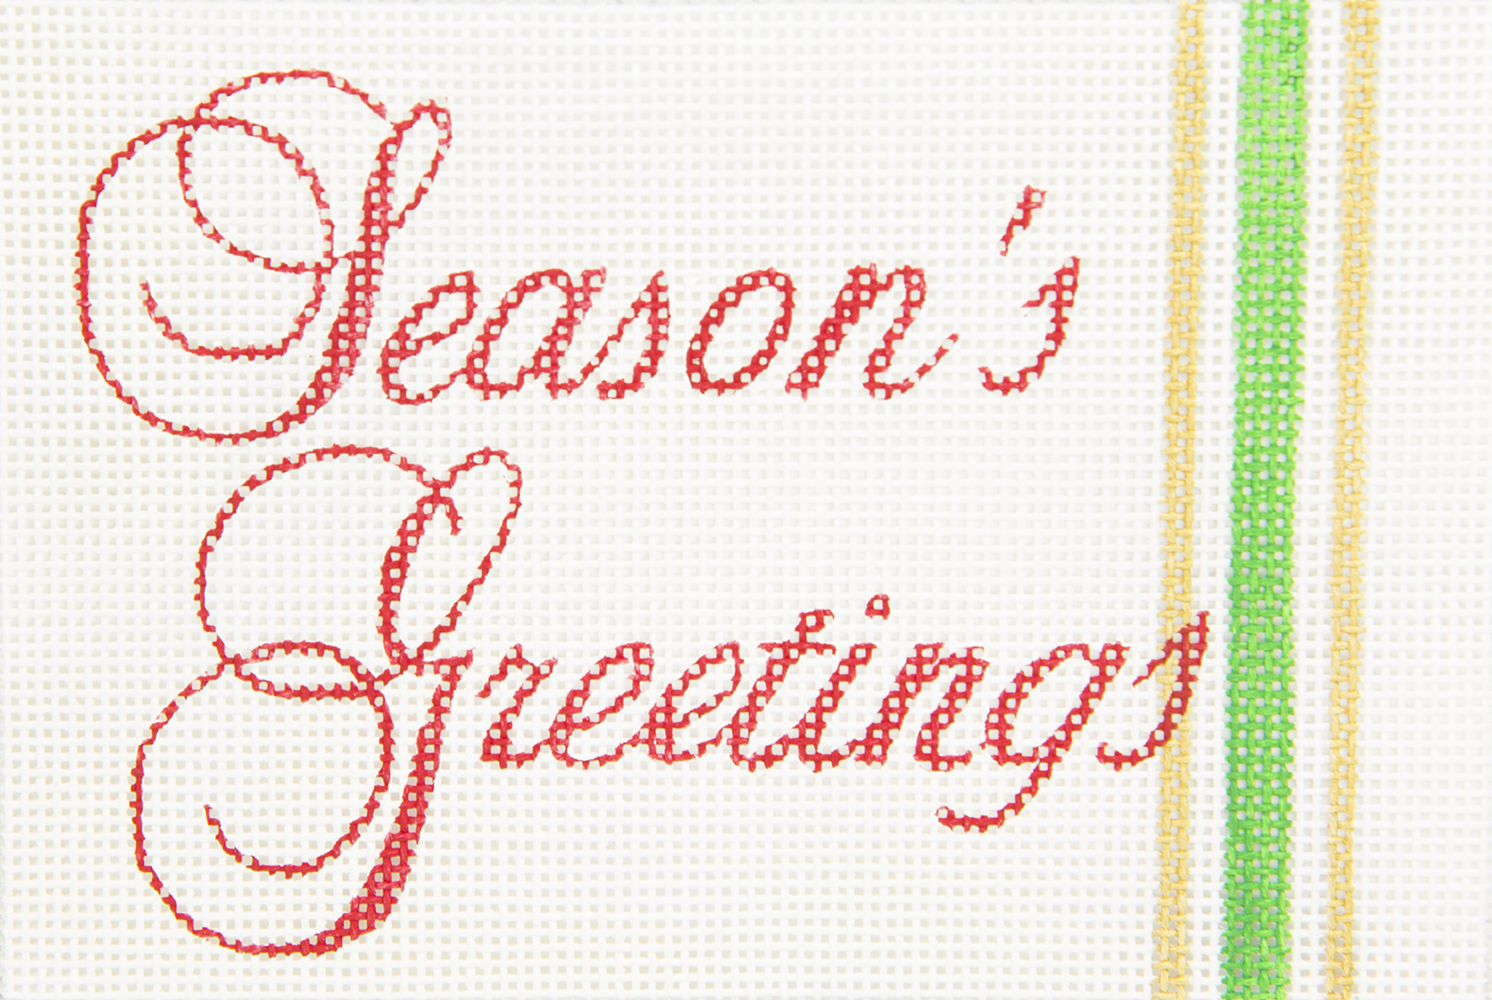 CORN8 Seasons Greetings & More Designs